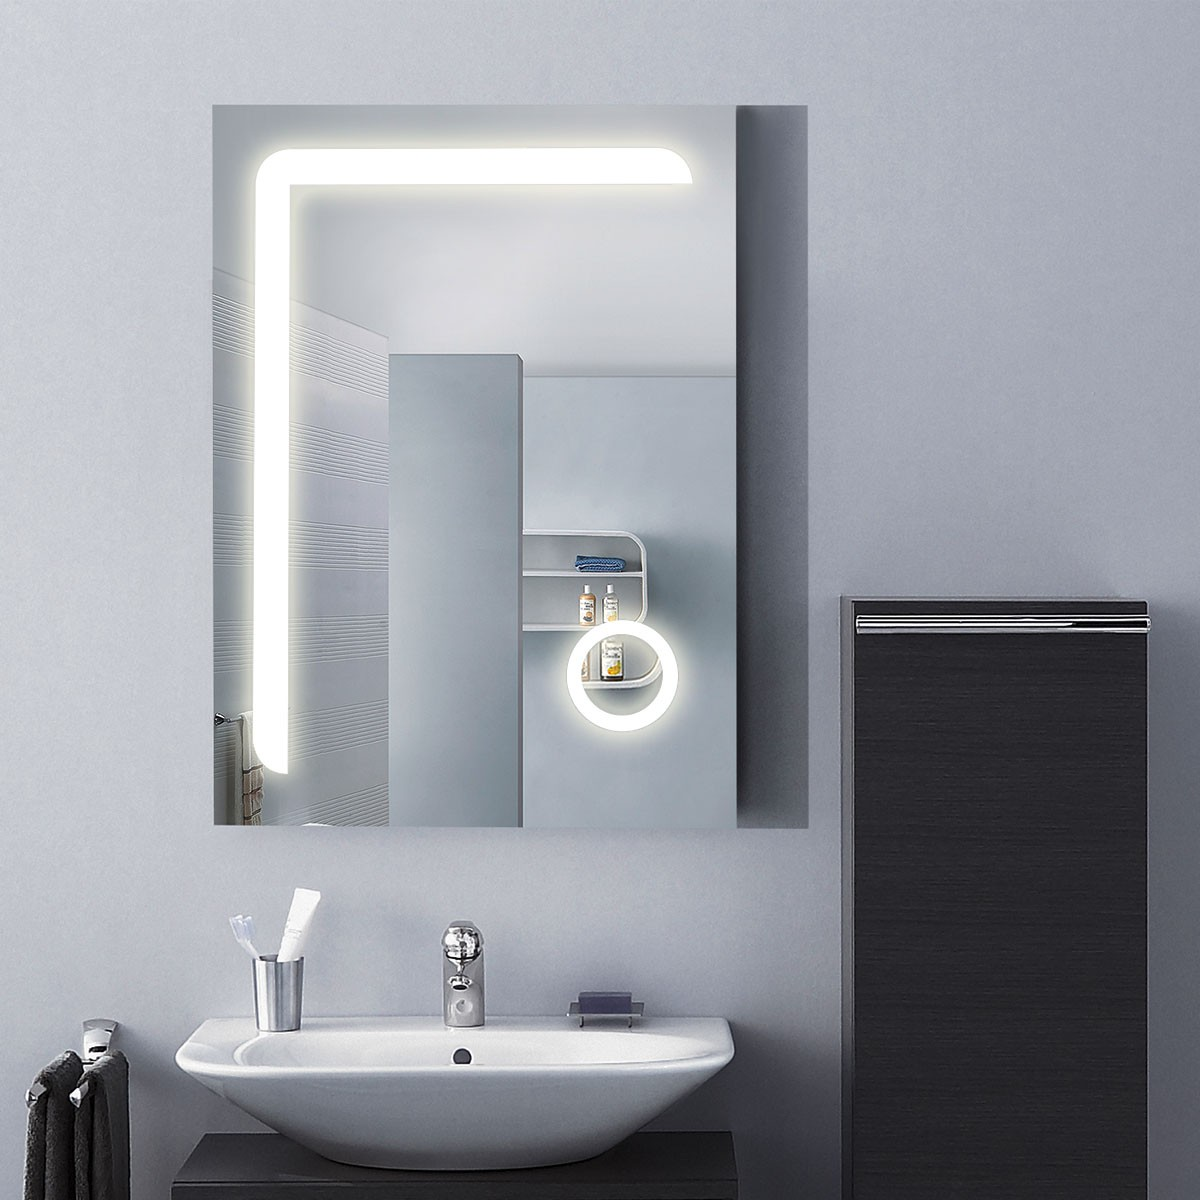 LED Bathroom Mirror with Circular Magnifier, ON/OFF Switch/24 Inch x 32 Inch (DK-OD-CL810)